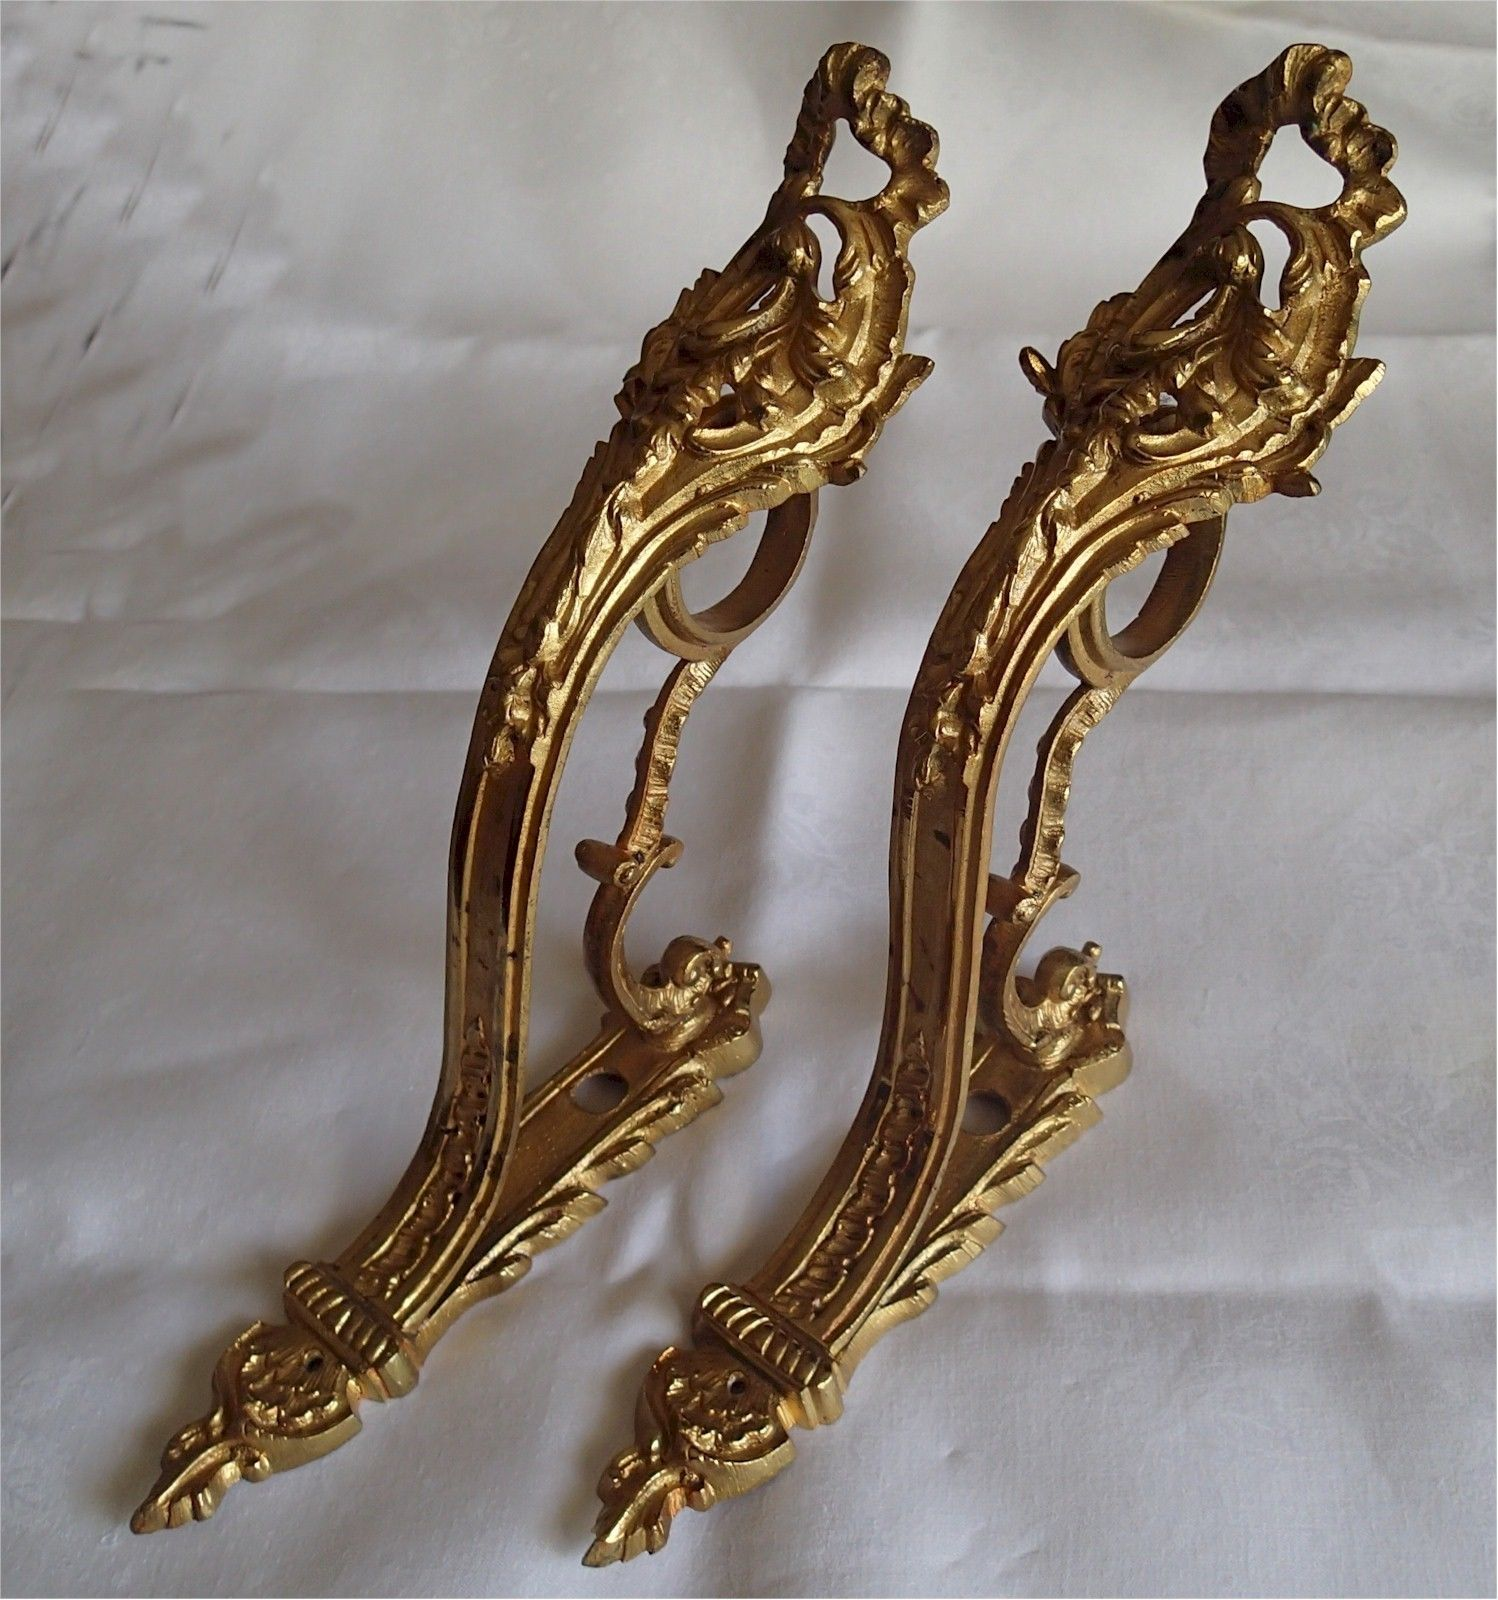 Vintage Ornate Gold Gilt Metal Curtain Brackets